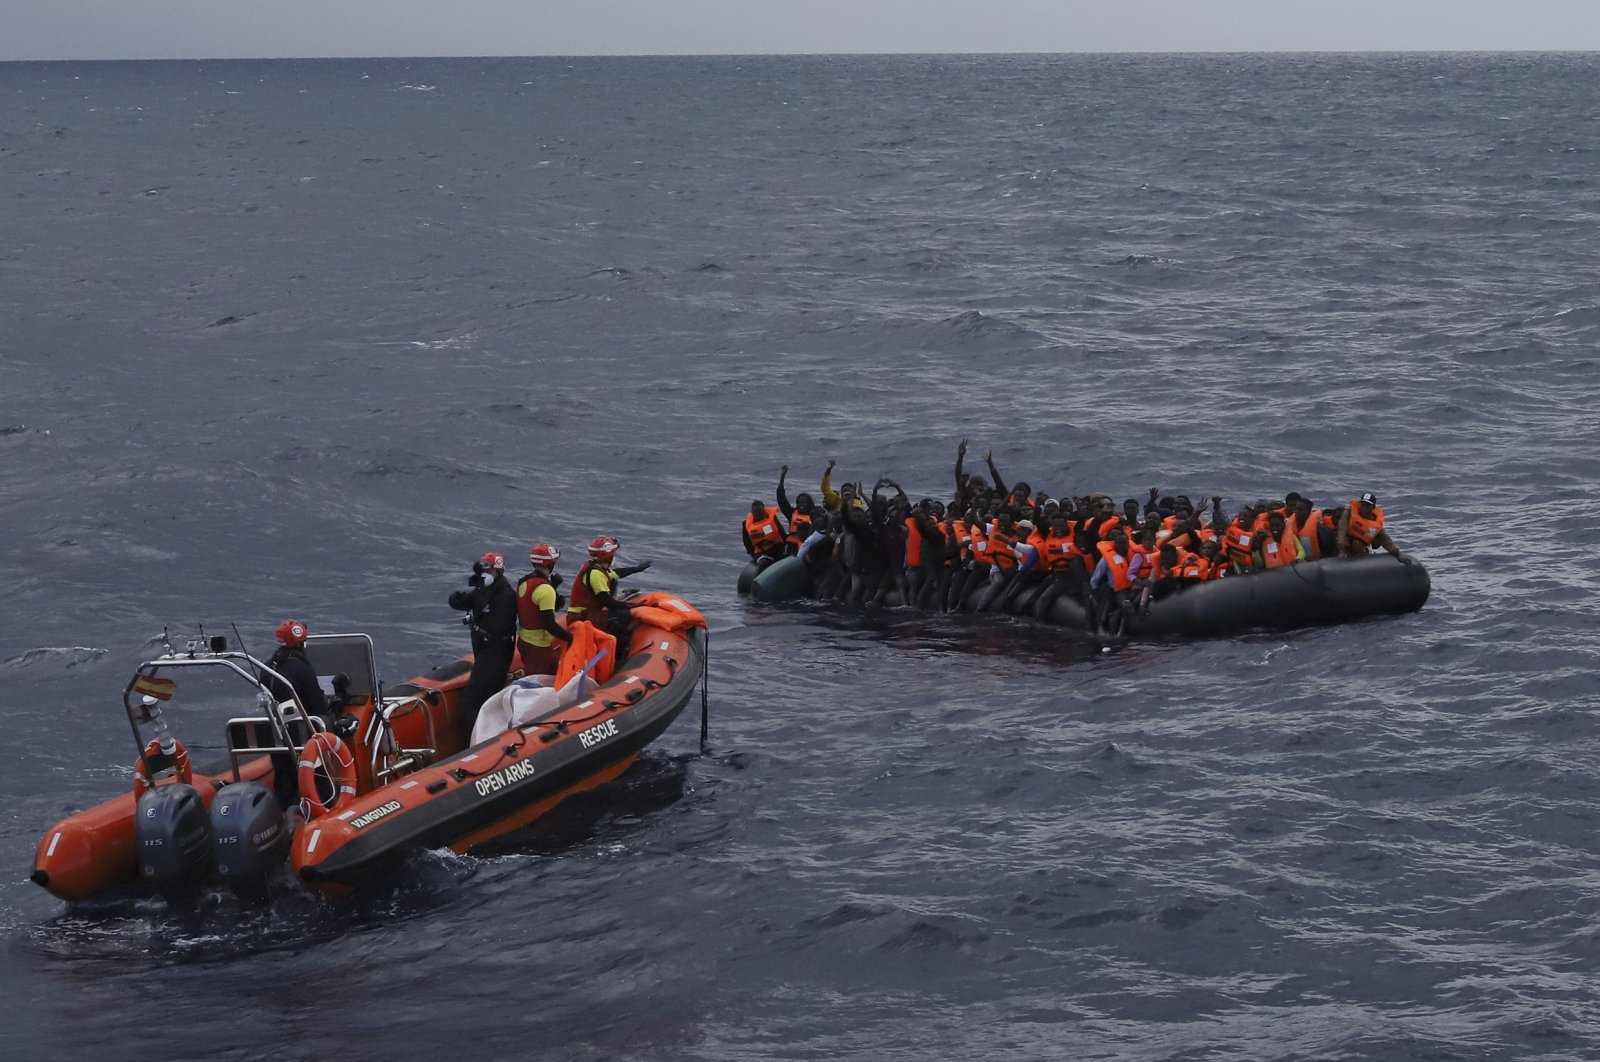 Refugees and migrants wait to be rescued by members of the Spanish NGO Proactiva Open Arms in the Mediterranean Sea, Nov. 11, 2020. (AP Photo)